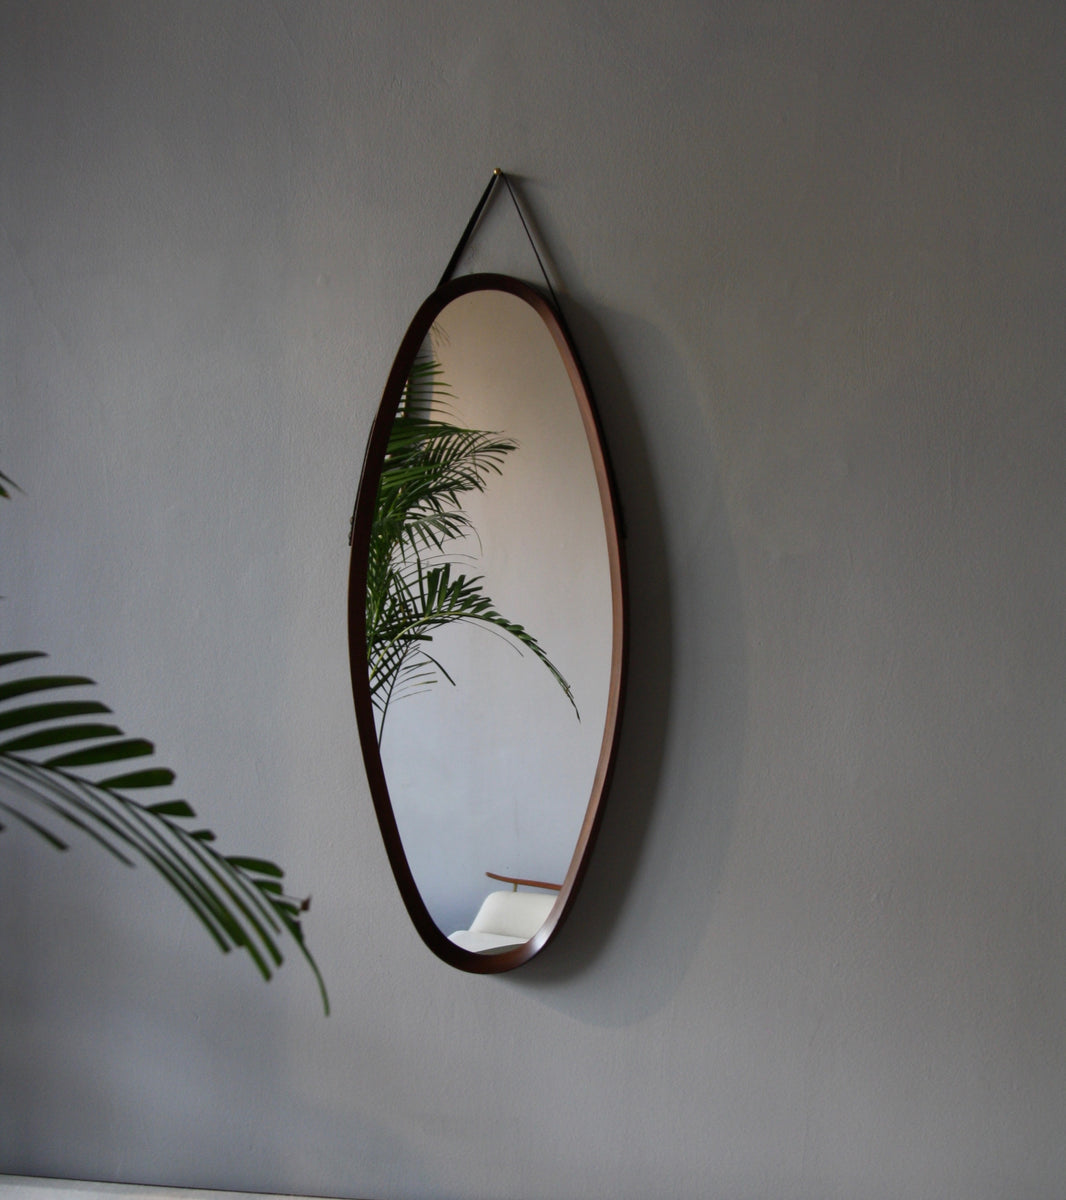 Teak Oval Mirror with Leather Strap Denmark C. 1950